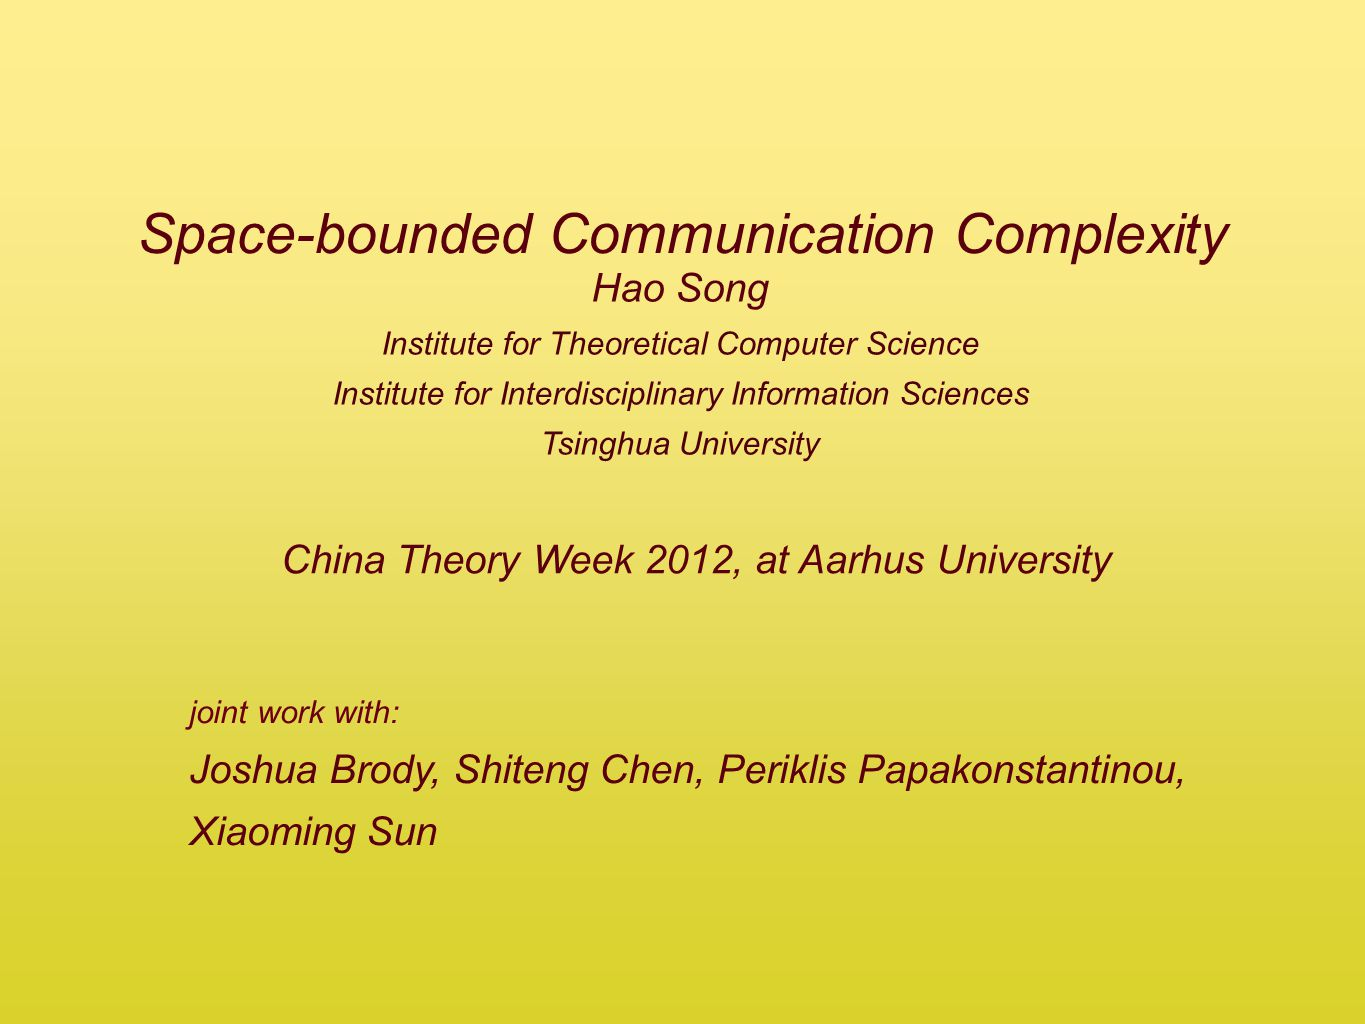 Space-bounded Communication Complexity Hao Song Institute for Theoretical Computer Science Institute for Interdisciplinary Information Sciences Tsinghua University joint work with: Joshua Brody, Shiteng Chen, Periklis Papakonstantinou, Xiaoming Sun China Theory Week 2012, at Aarhus University